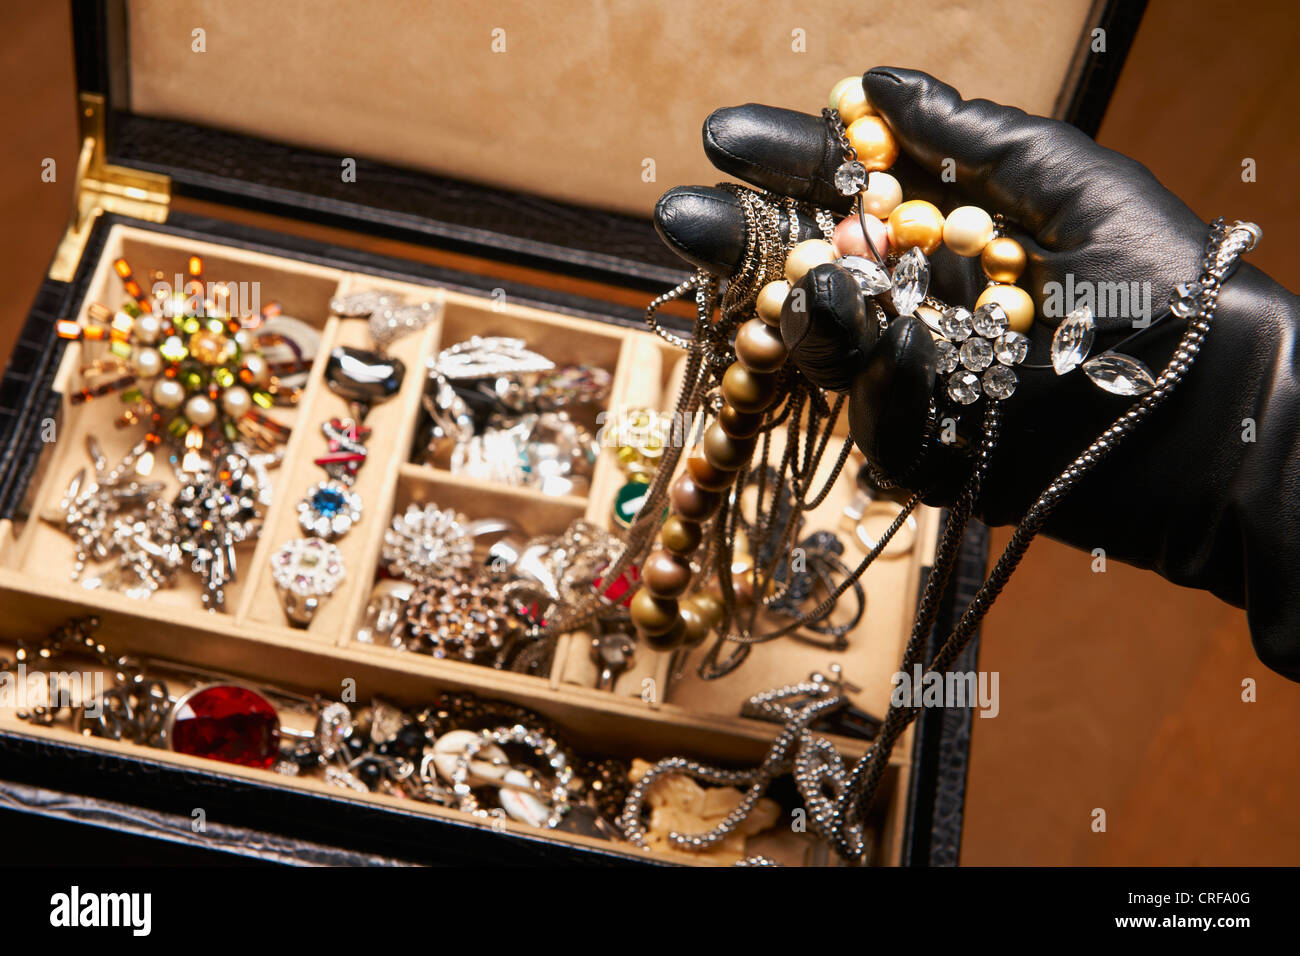 Gloved hand stealing jewelry - Stock Image